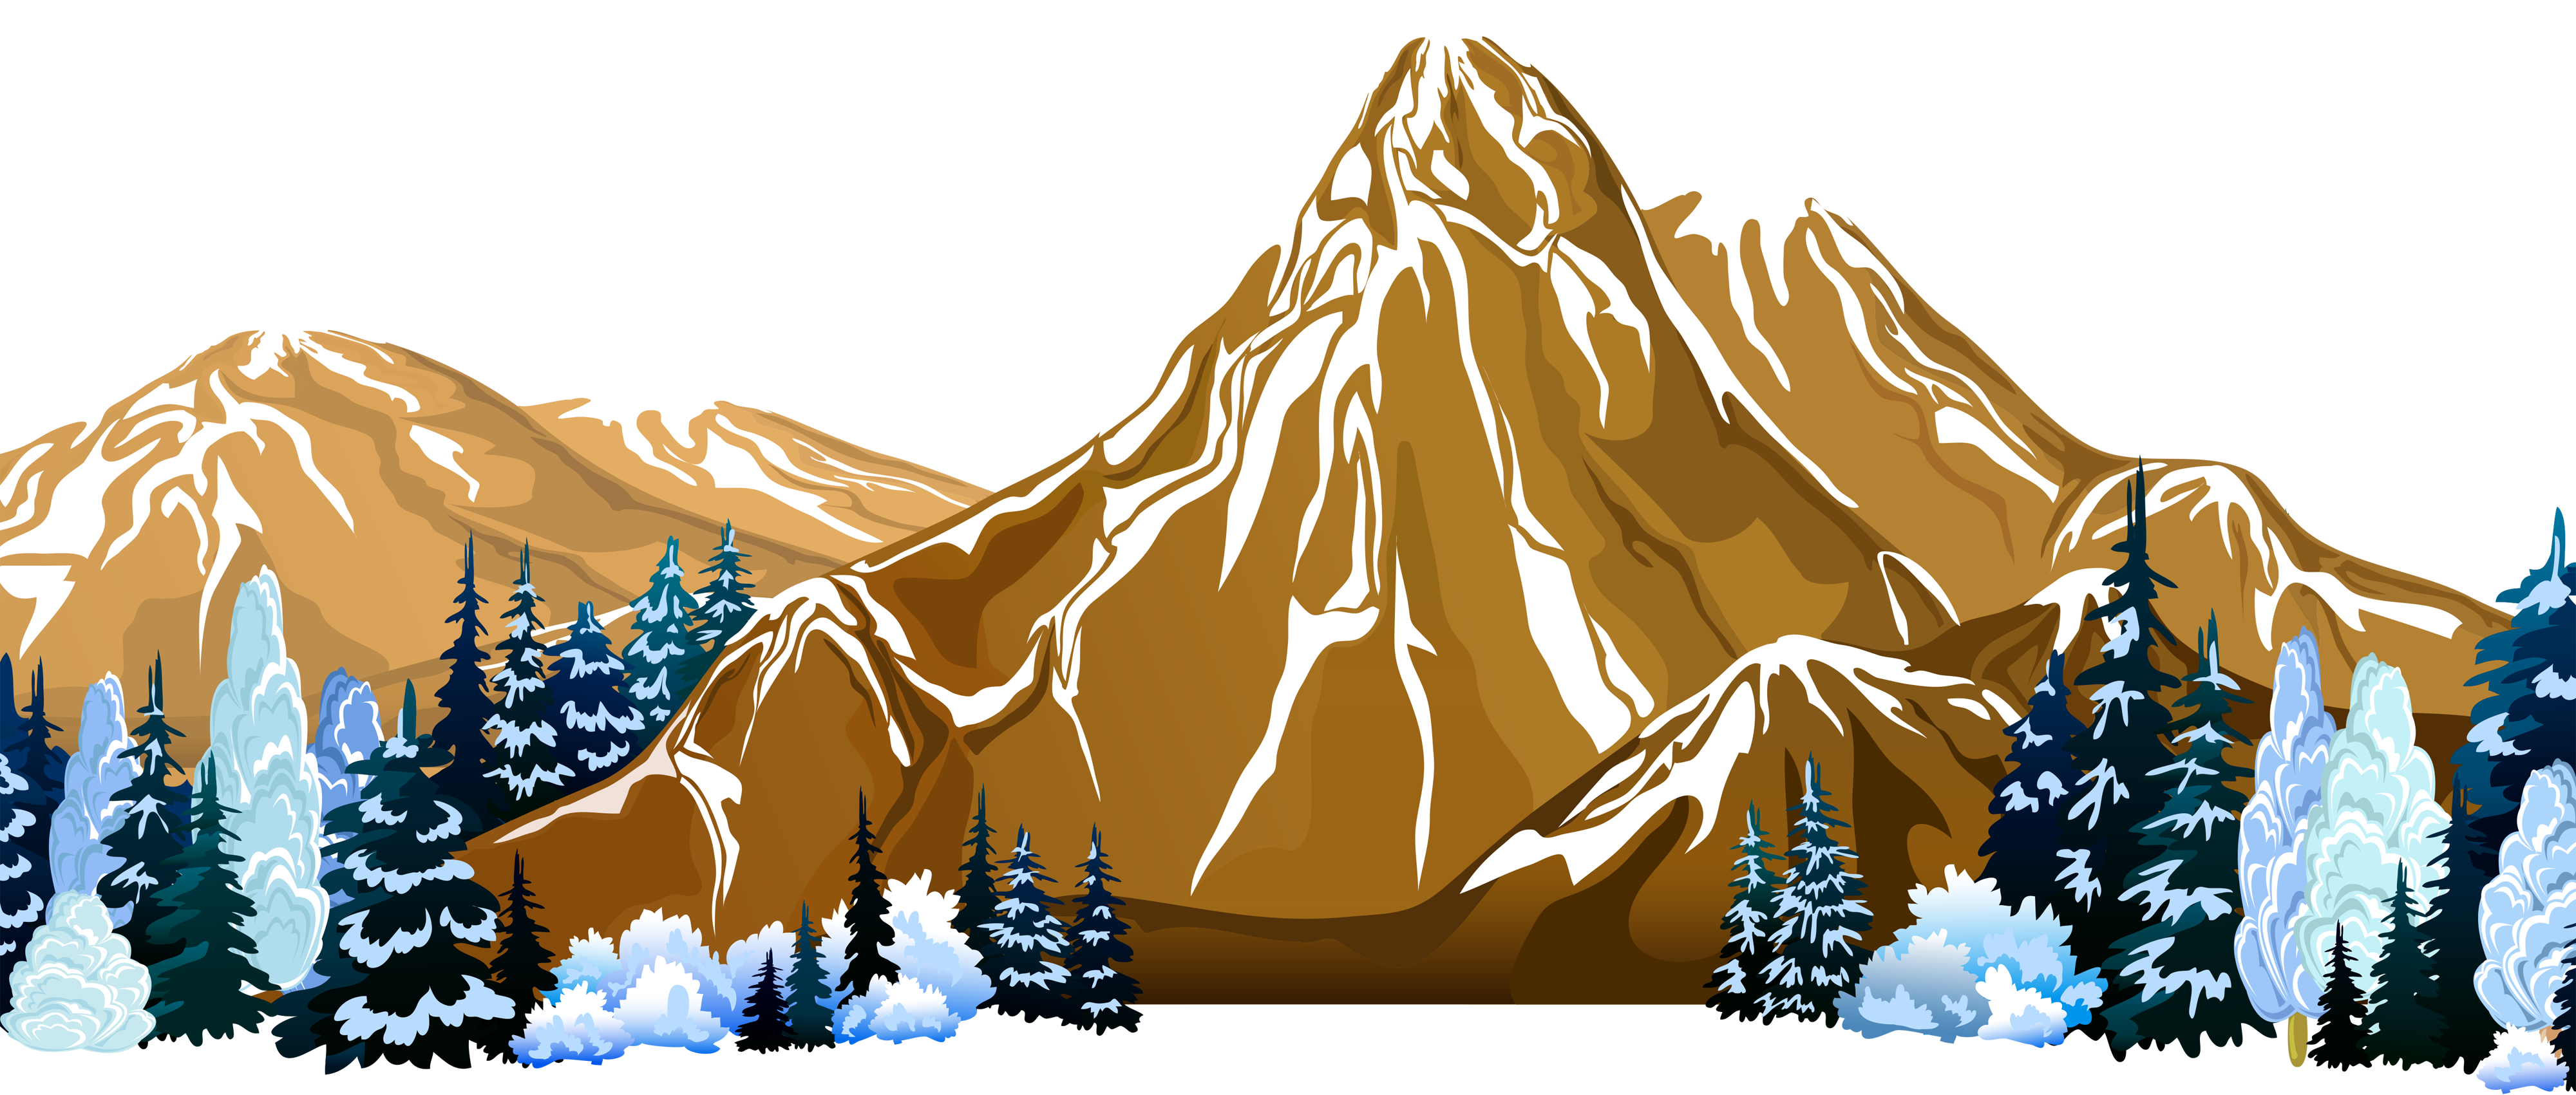 graphic free stock Png image purepng free. Mountain clipart transparent background.